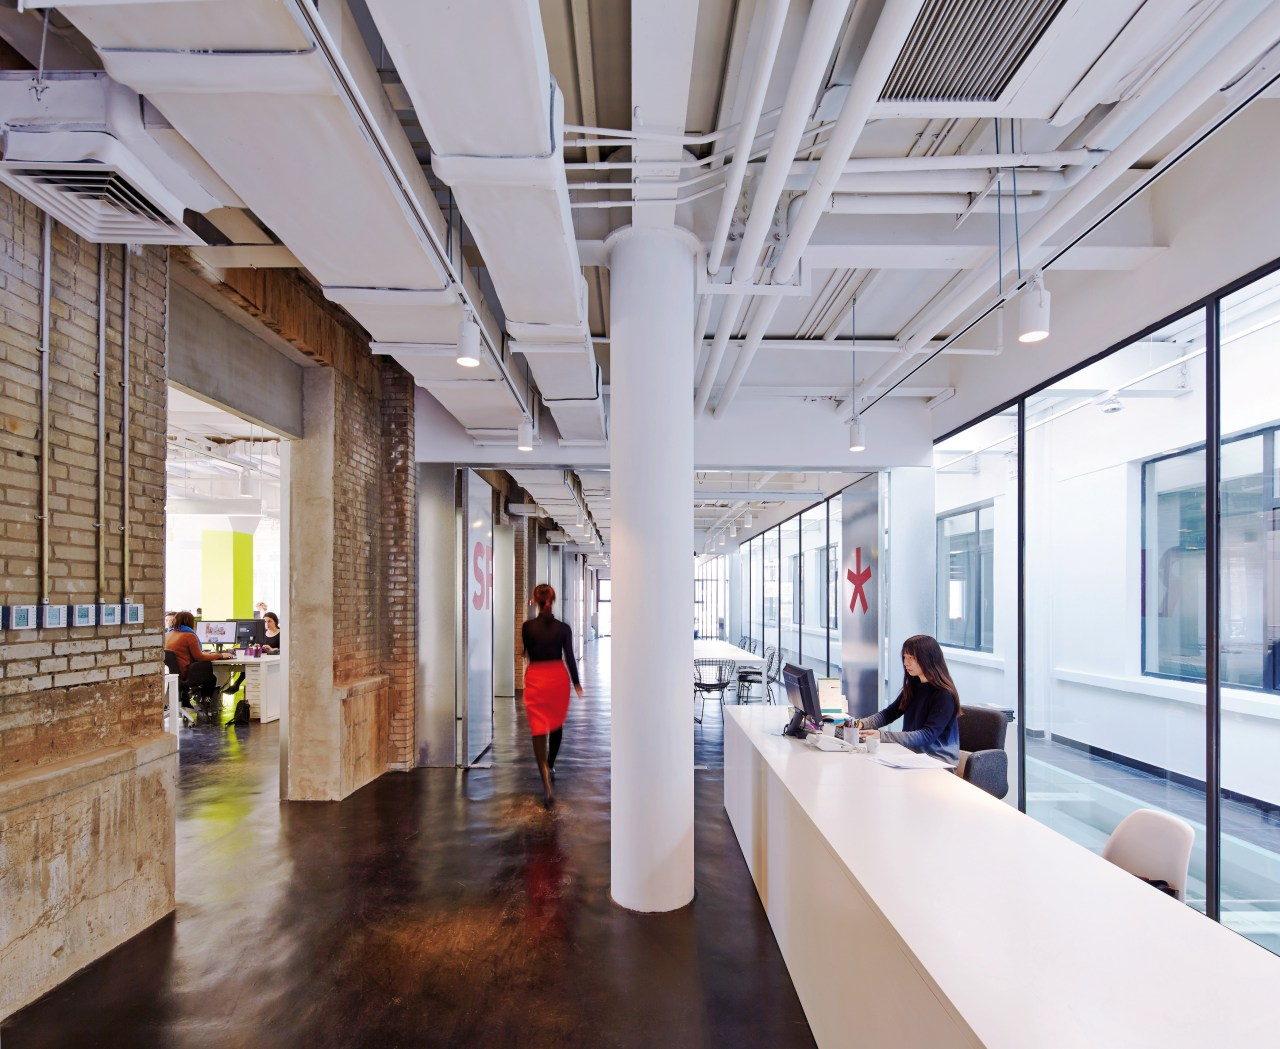 Exposed brick walls and service ducts provide an architecture, ceiling, interior design, lobby, gray